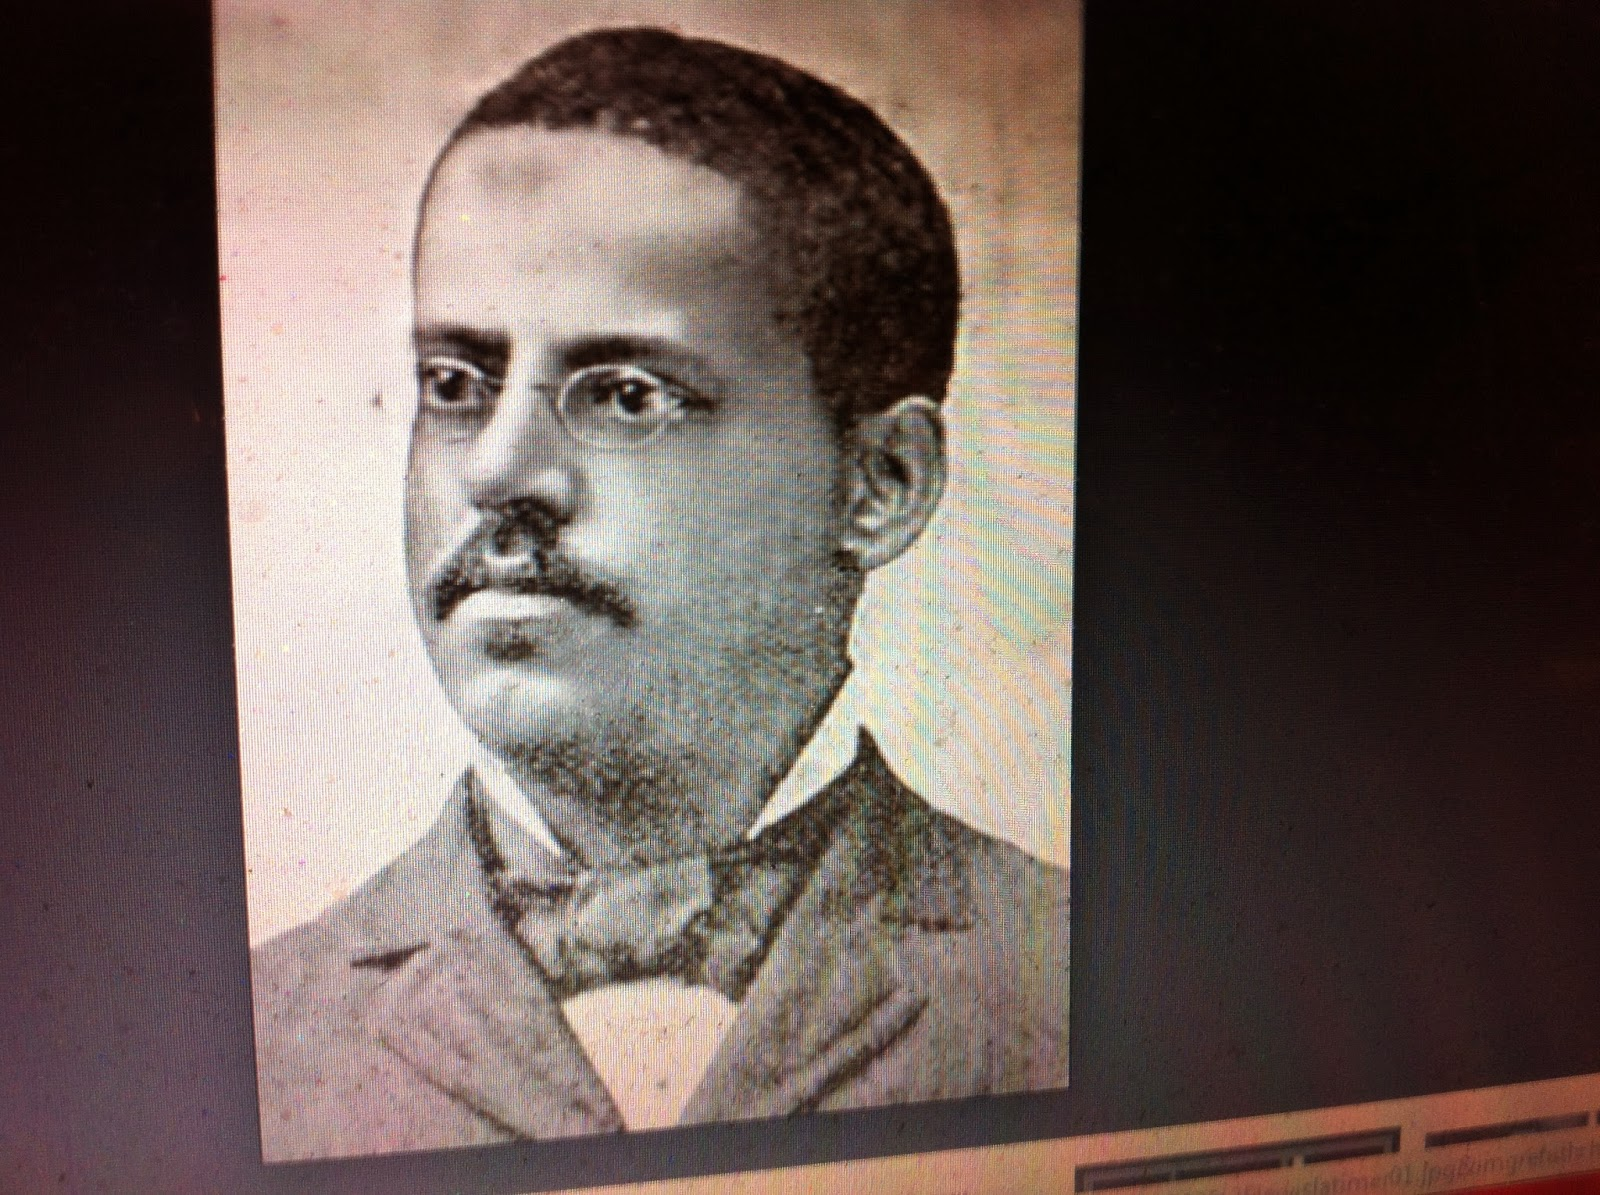 a biography of lewis howard latimer the african american inventor Lewis howard latimer was born on september 4, 1848, in chelsea, massachusetts, a suburb of boston his father, george a latimer, was a freed slave who deserted his wife and family when lewis was approximately ten years old, forcing the youngster to forego his formal education in order to help his mother and four siblings survive.